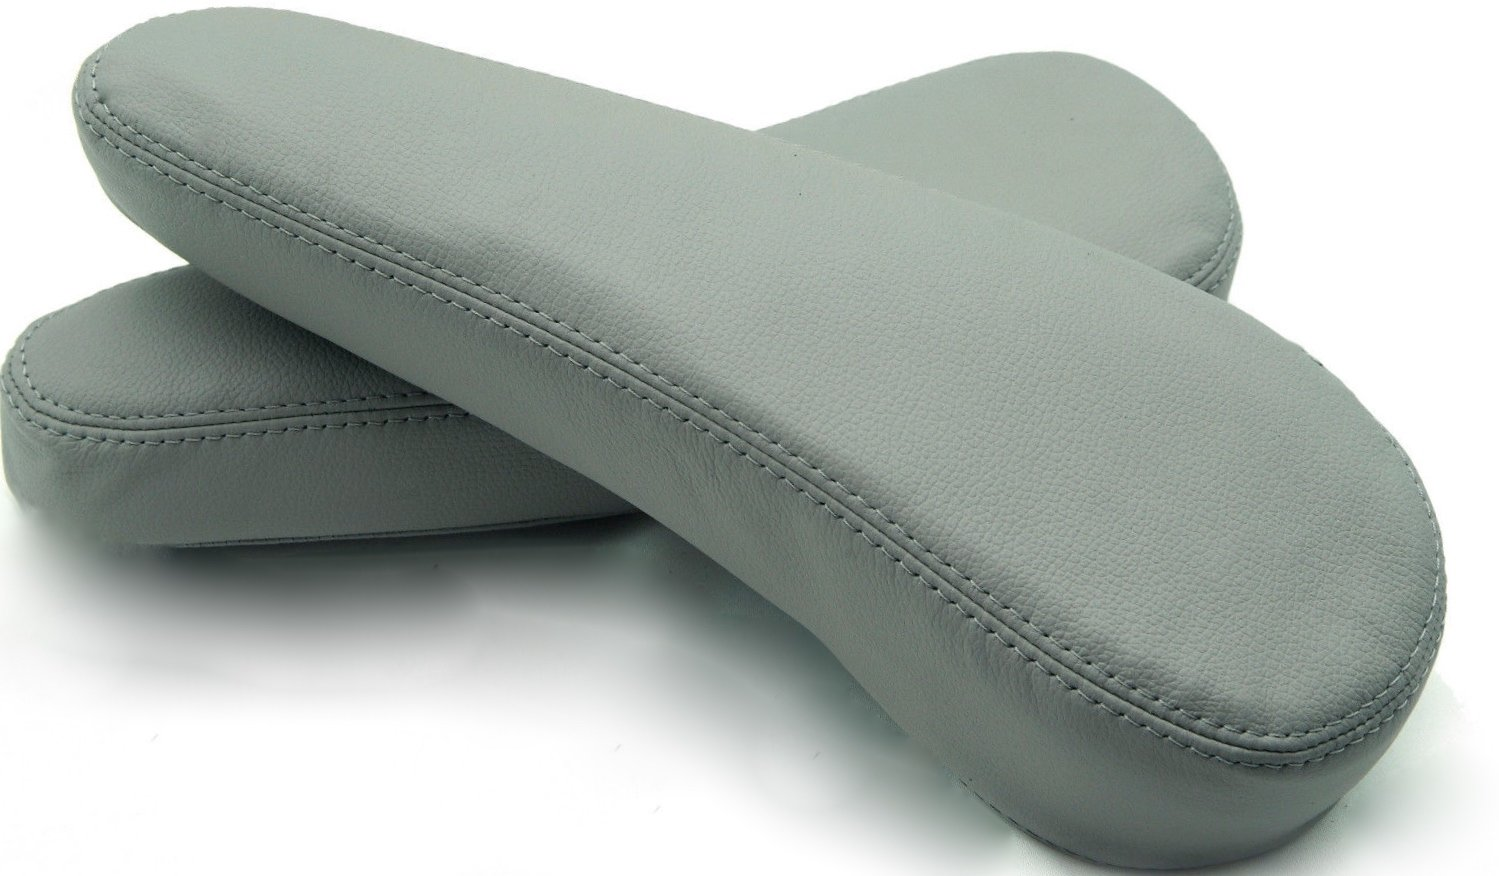 AAAUPHOLSTER Custom-made for Toyota Sienna 05-10 Seats 2X Armrests Real Leather Kit OEM Stone GRAY